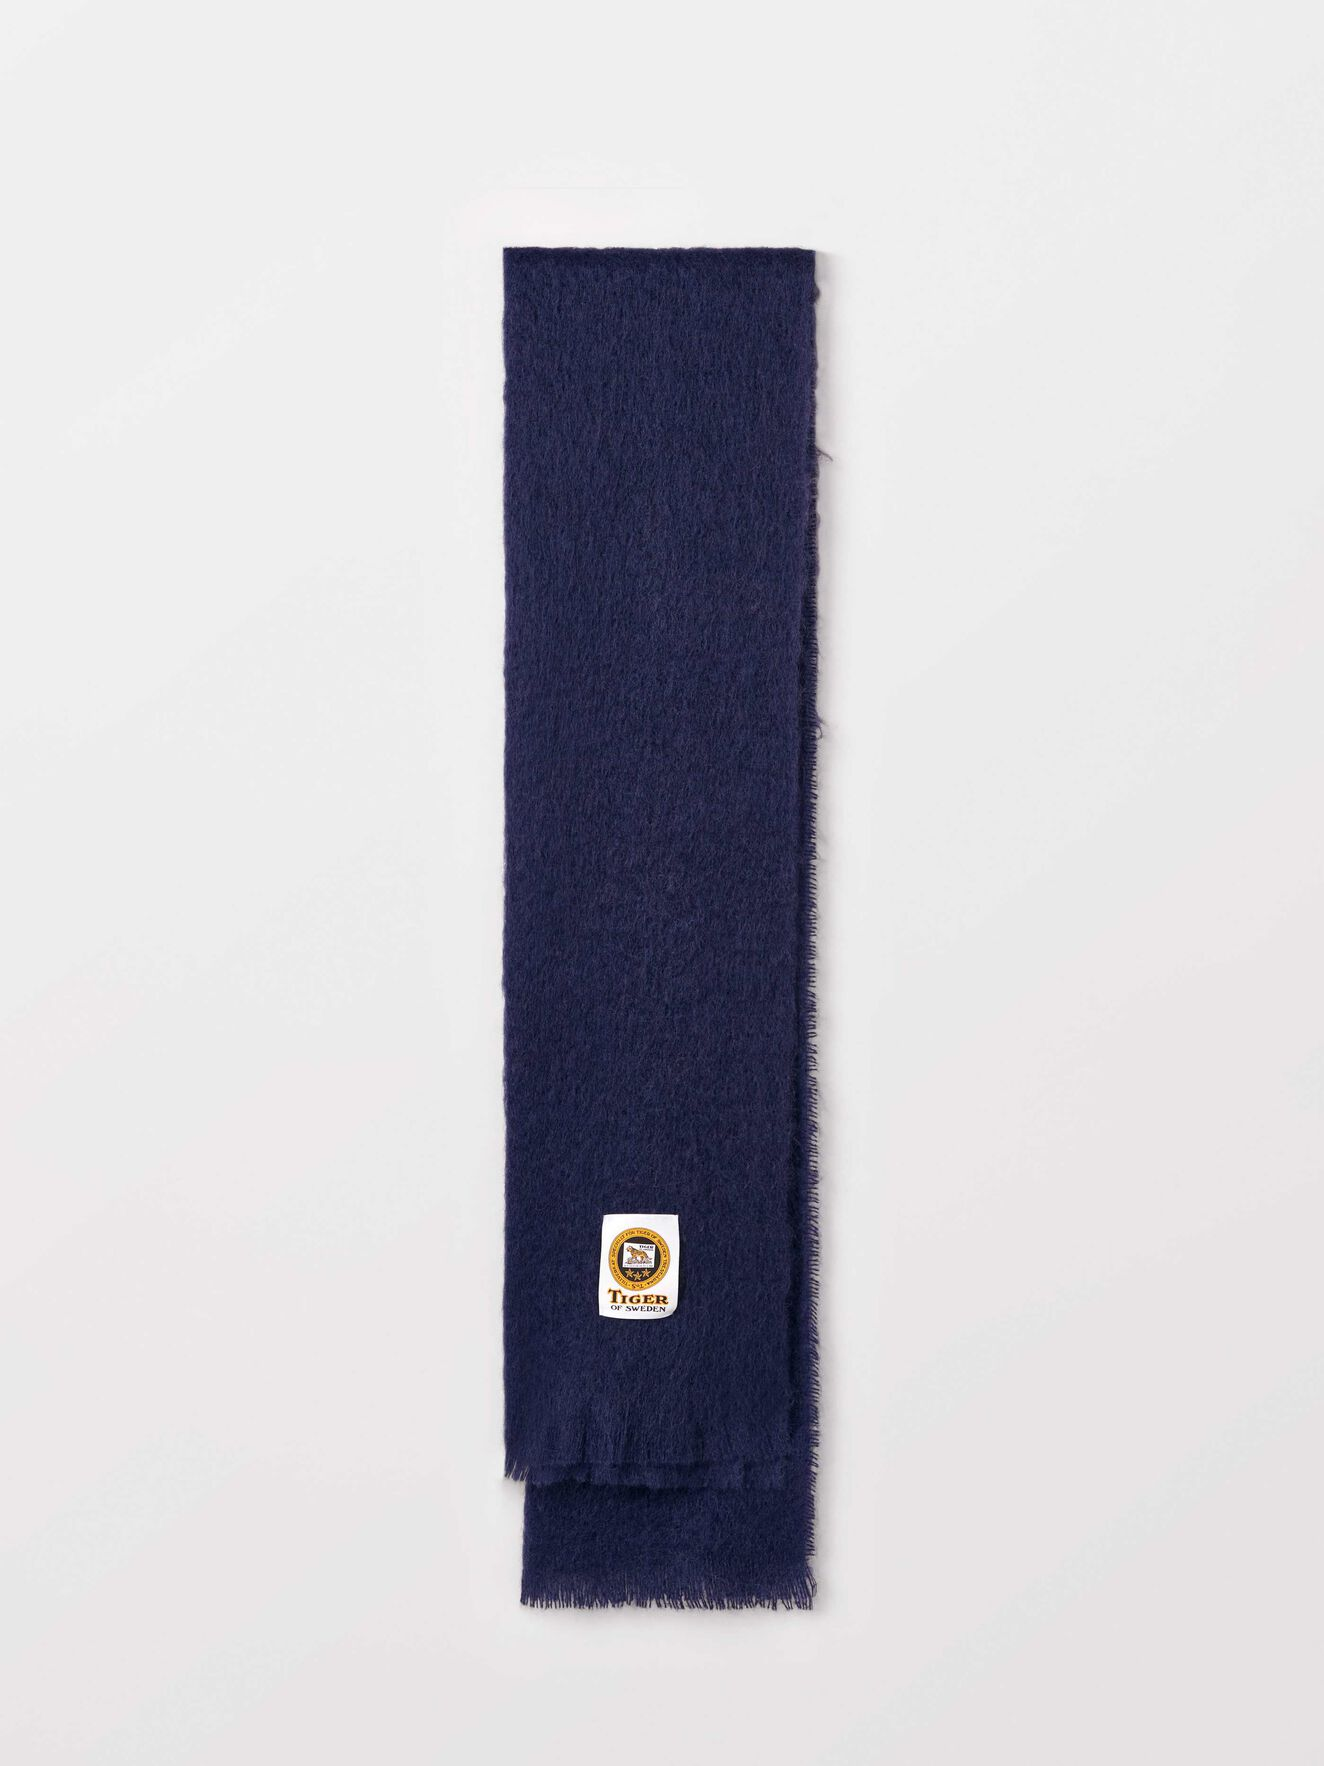 Habrosa Scarf in Royal Blue from Tiger of Sweden